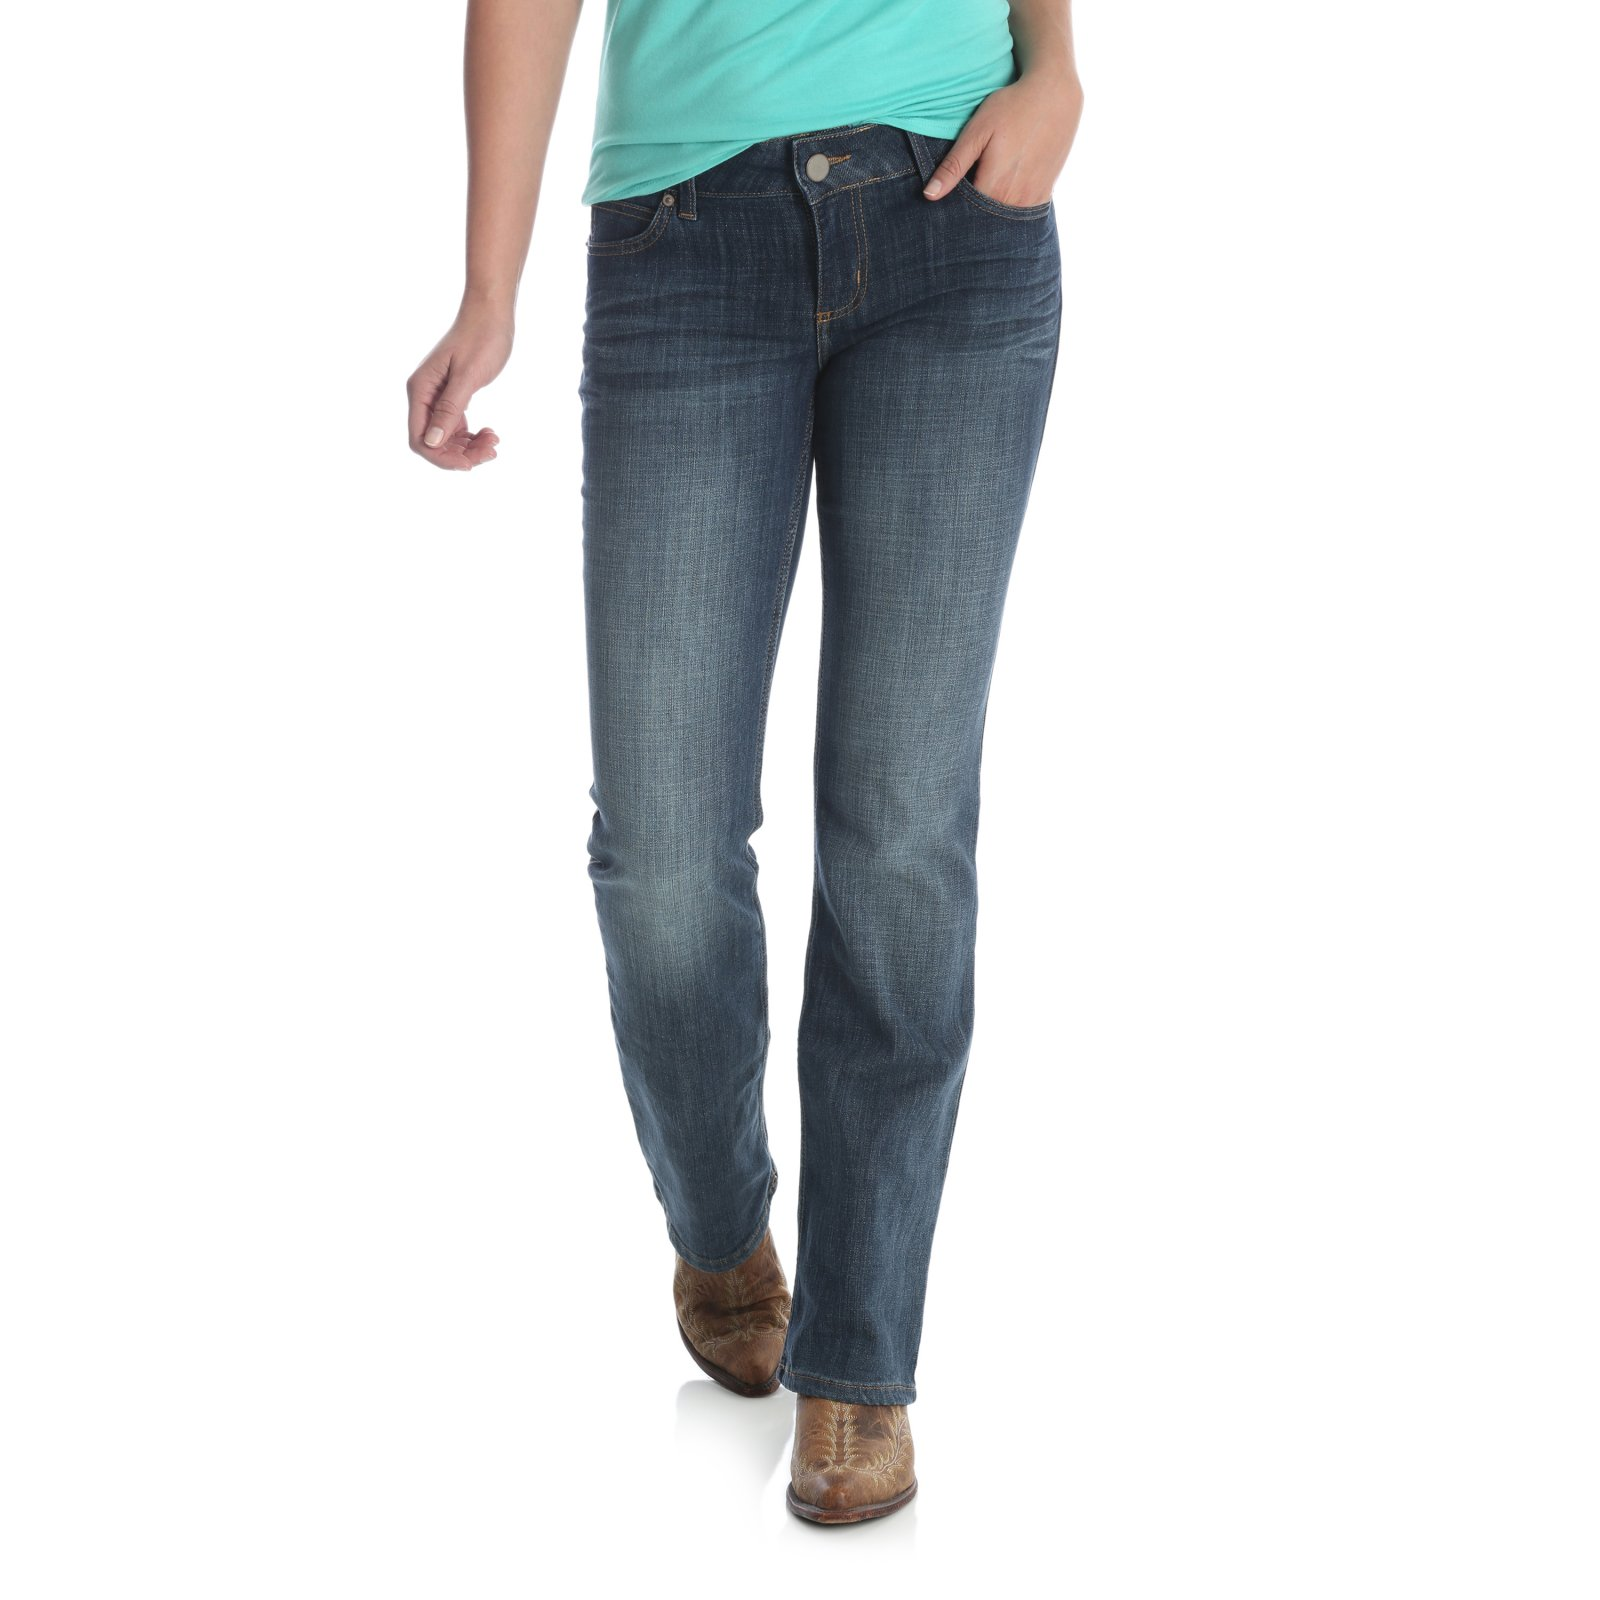 Ladies Boot Cut Jean from Wrangler